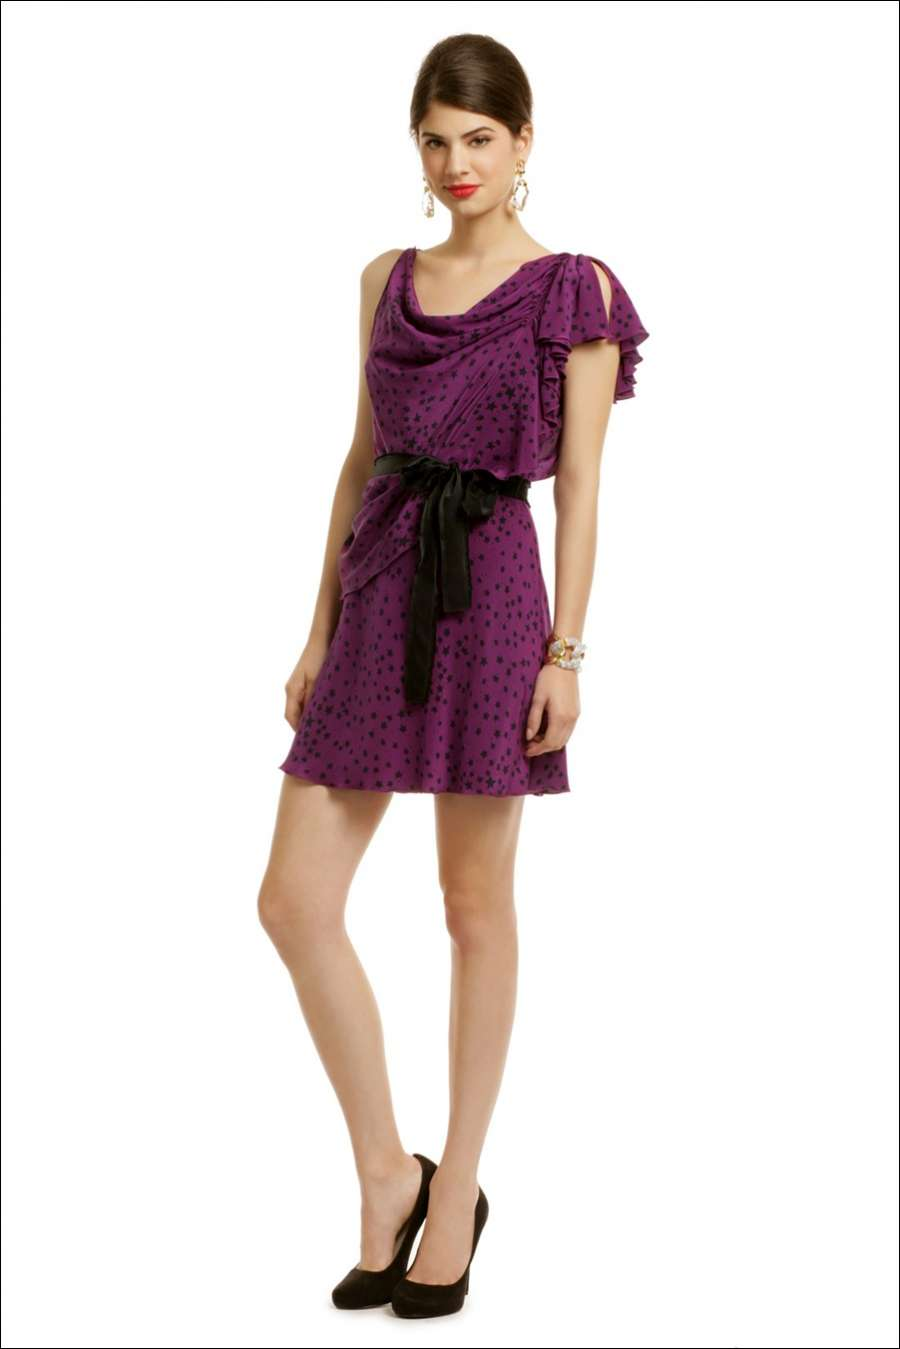 Shop our Collection of Women's Purple Dresses at ciproprescription.ga for the Latest Designer Brands & Styles. FREE SHIPPING AVAILABLE!